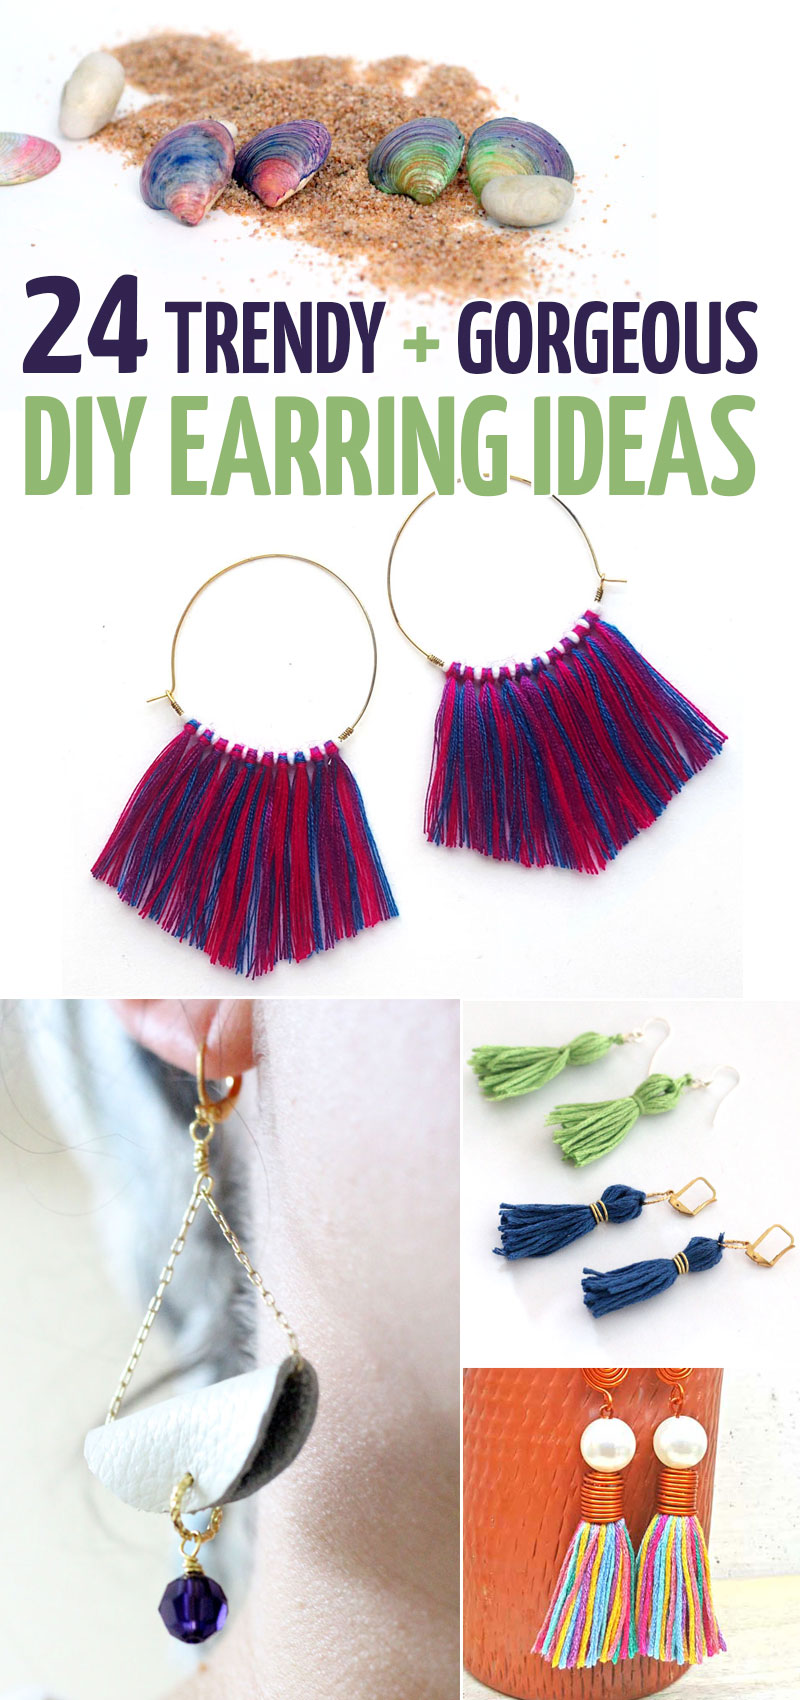 Click to learn how to make DIY earrings 24+ different ways! These easy ideas include so many types of jewelry making crafts for beginners - plus the basics of how to make earrings.